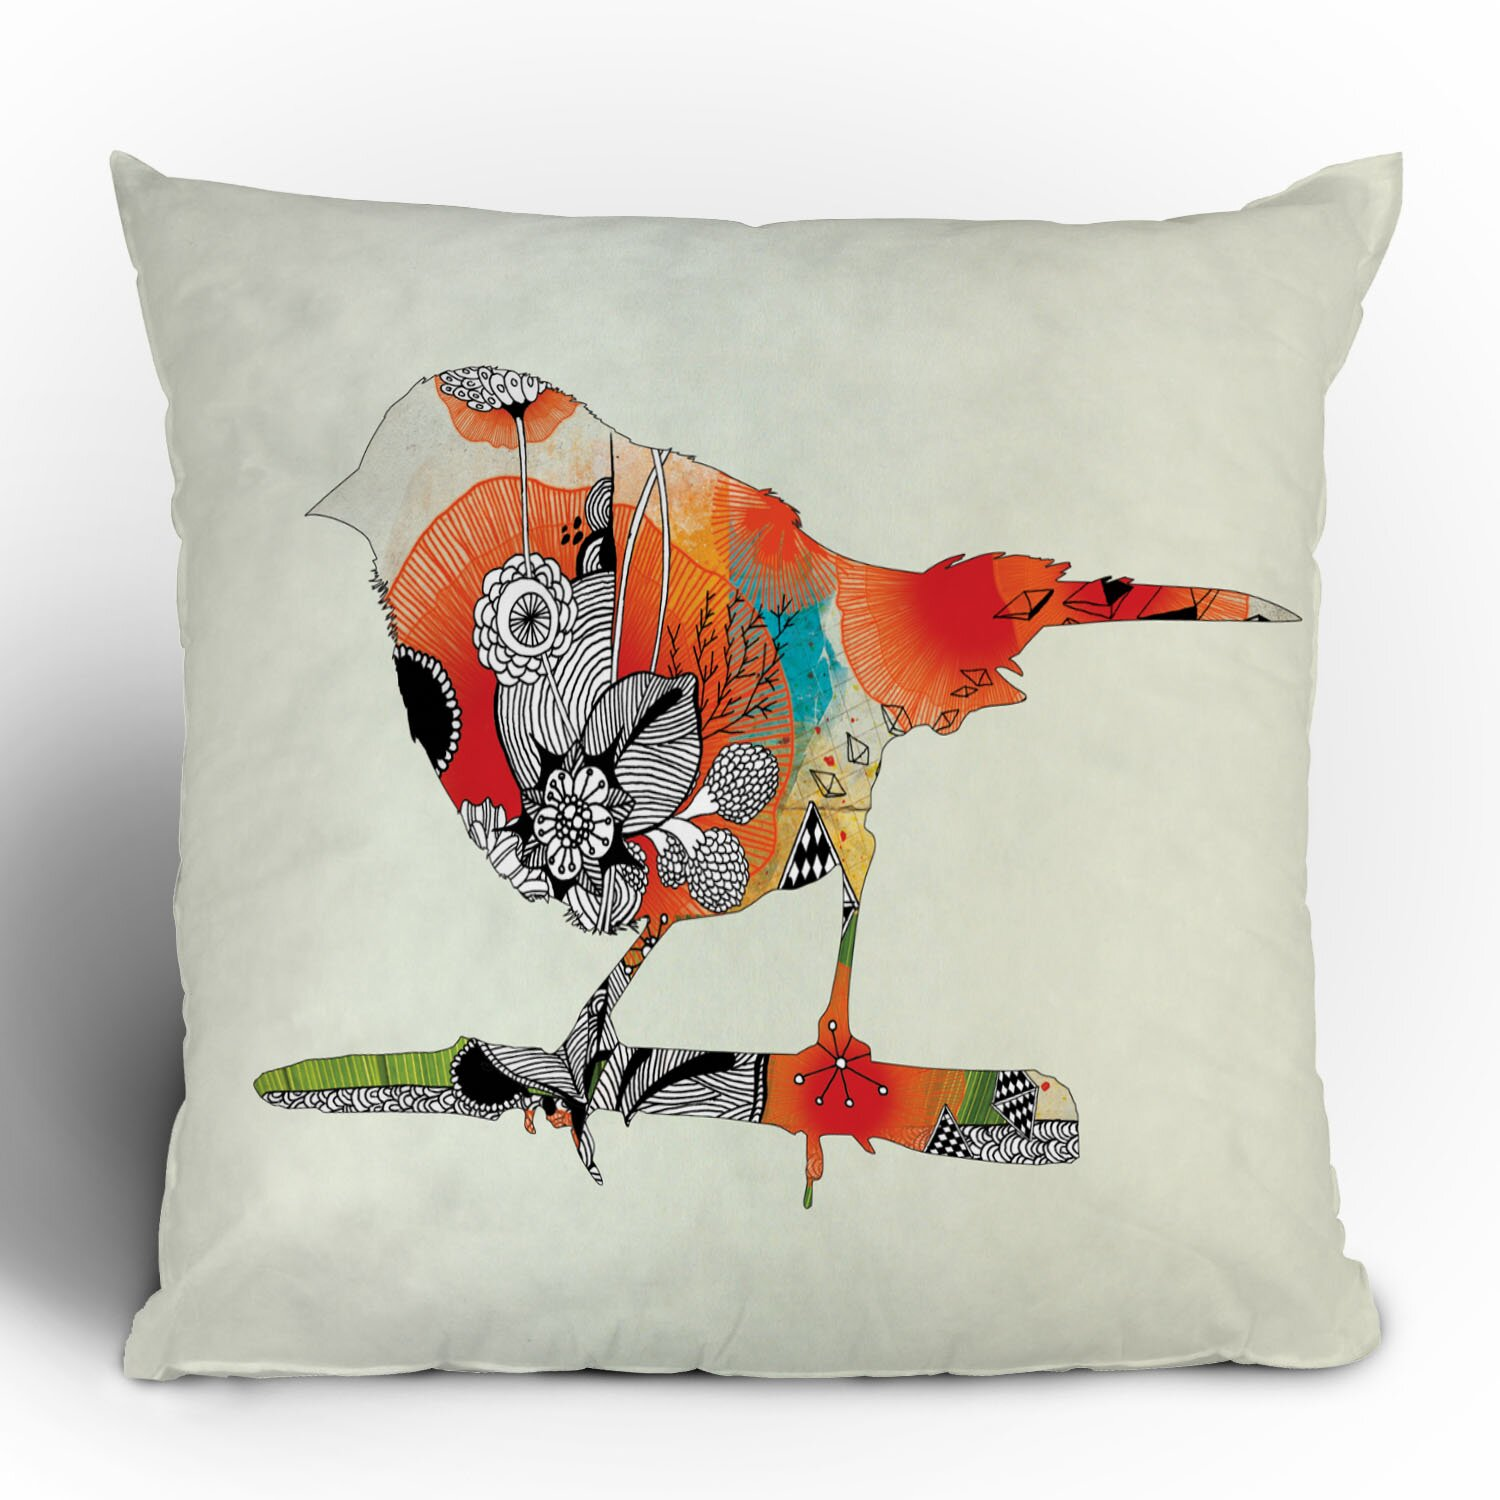 DENY Designs Iveta Abolina Little Bird Throw Pillow & Reviews Wayfair